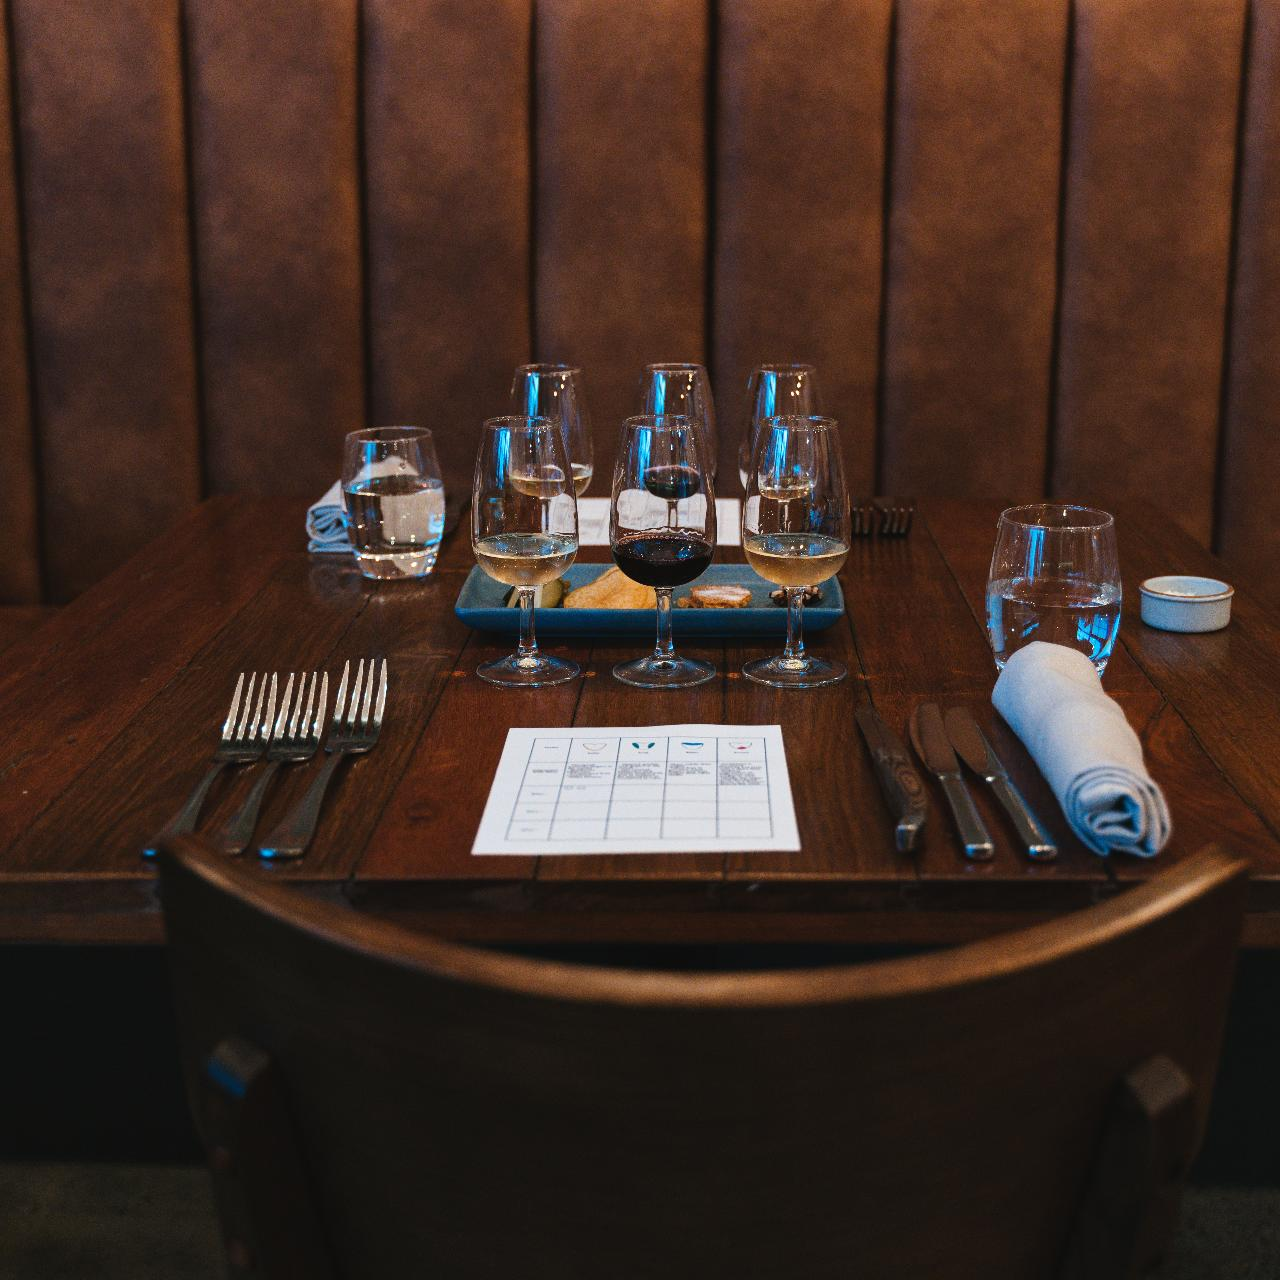 In Home/Hotel Wine and Food Pairing Experience